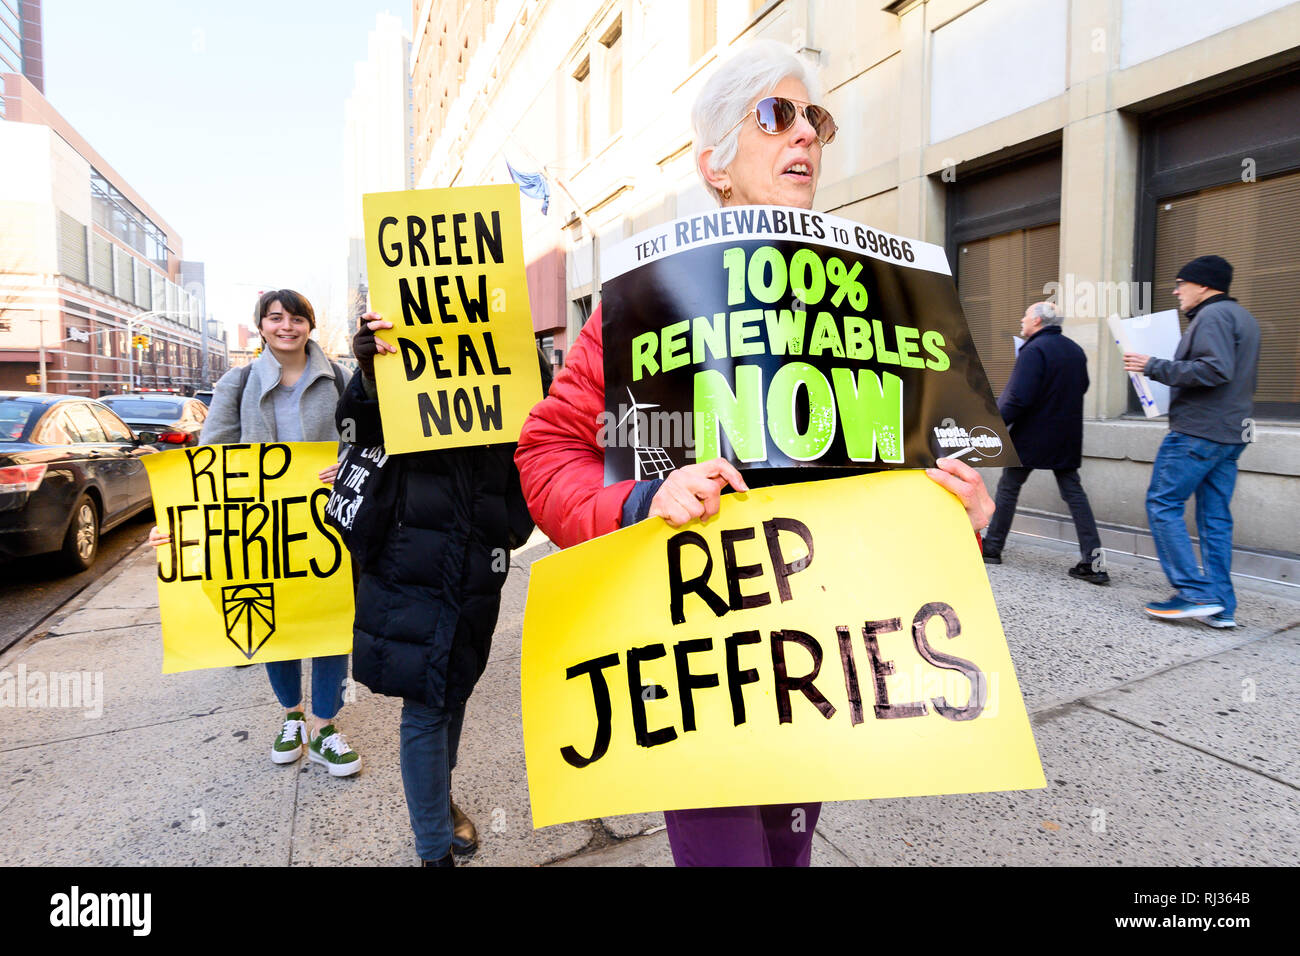 Demonstrators seen holding placards during the protest. 350.org, Food & Water Watch and other groups organized a protest to encourage U.S. Representative Hakeem Jeffries (D-NY) to support the Green New Deal. Protest was held in front of the Hanson Place office building in Brooklyn, NY. Stock Photo